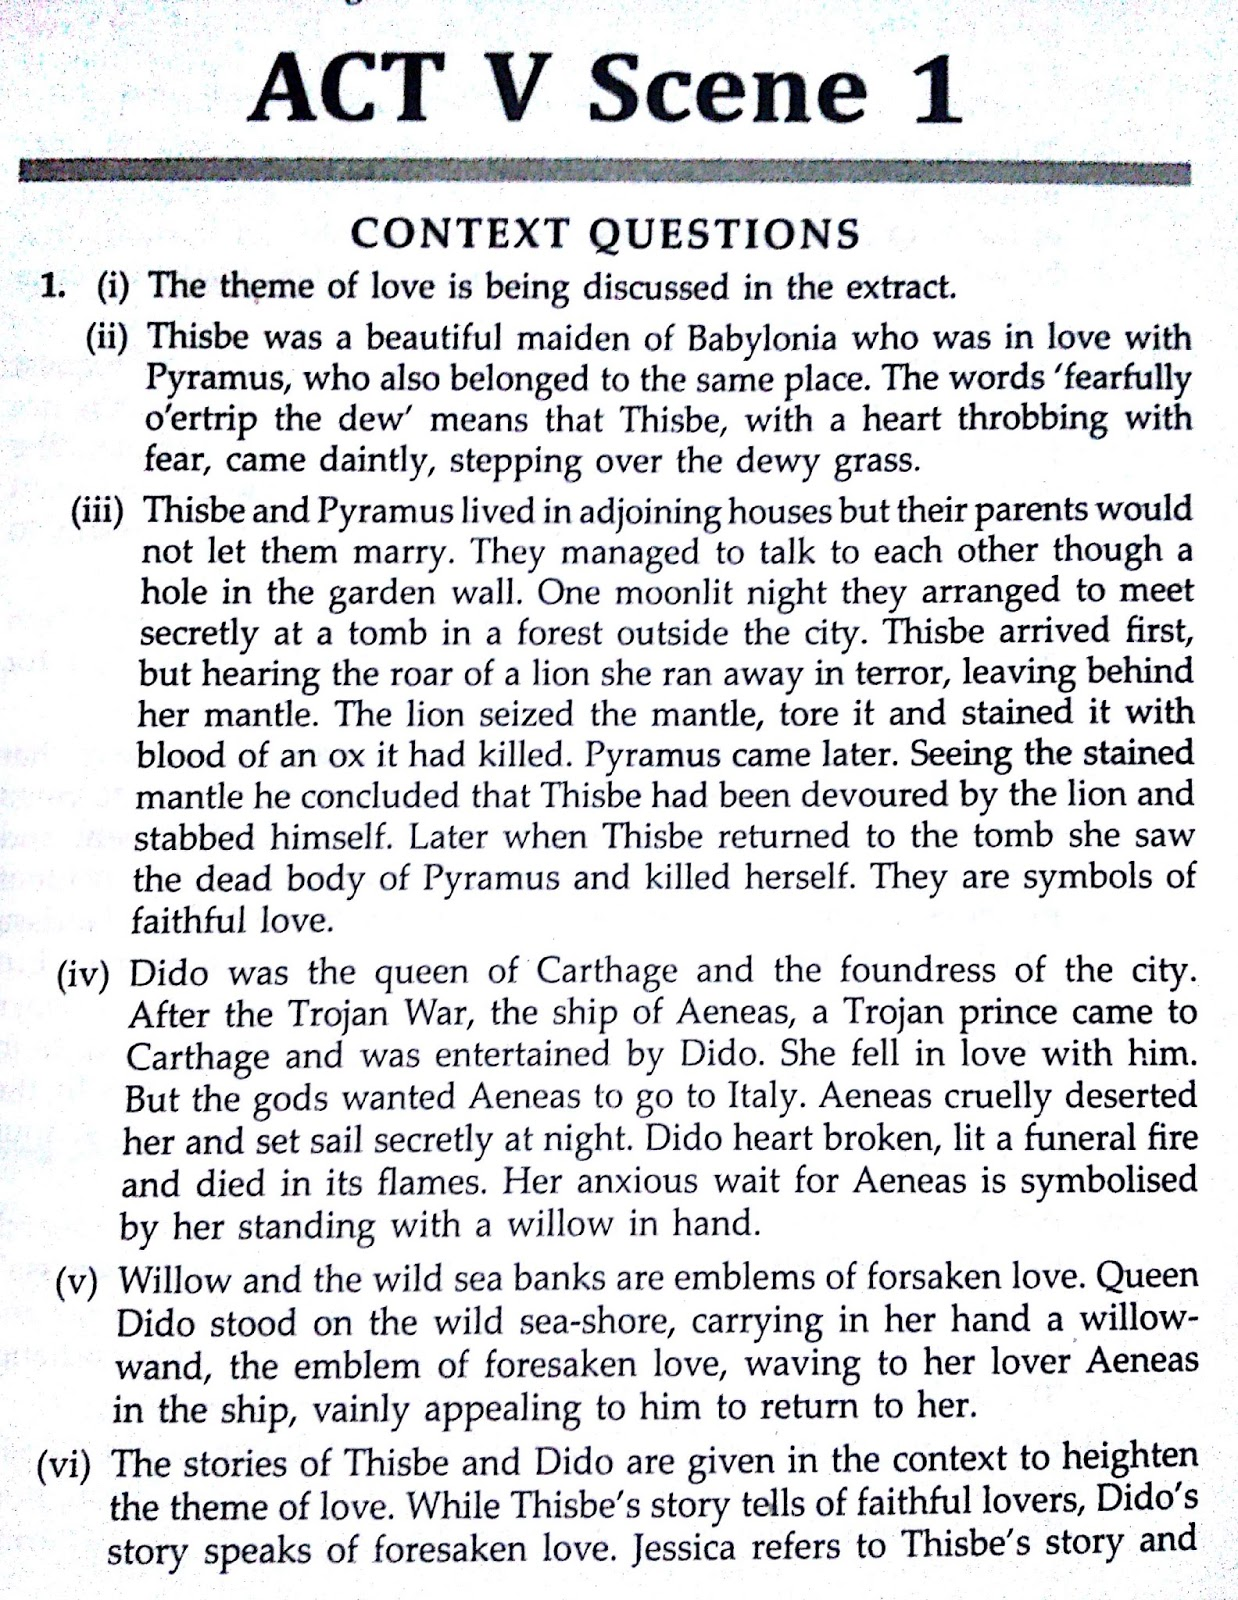 solved textbook workbook answers solutions of the merchant of venice act 5 scene 1